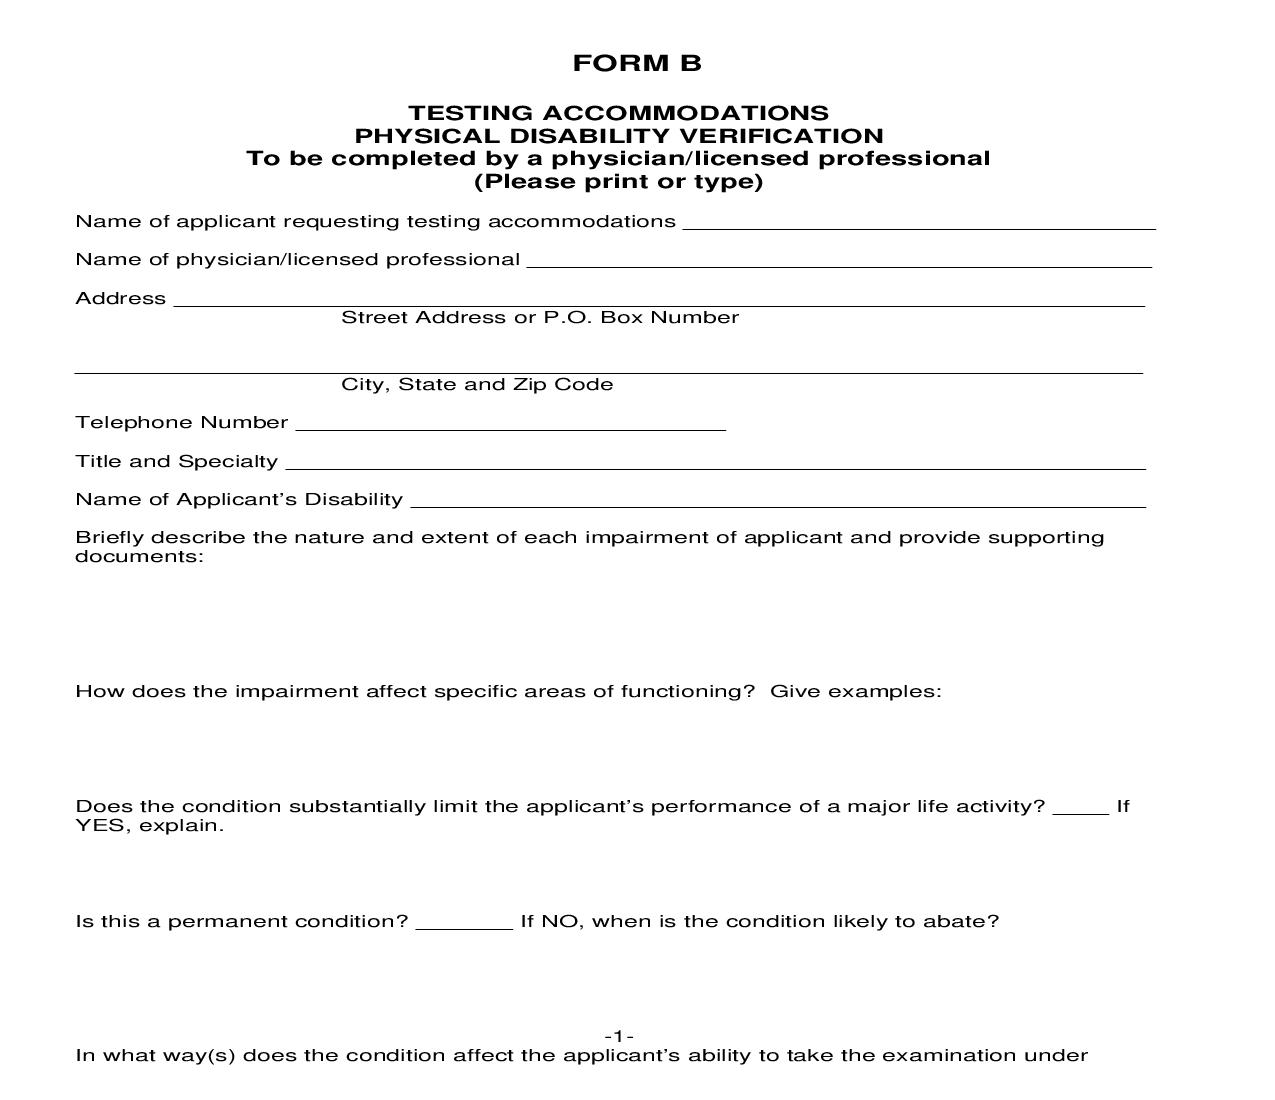 Application For Testing Accommodations - Form B | Pdf Fpdf Doc Docx | Iowa